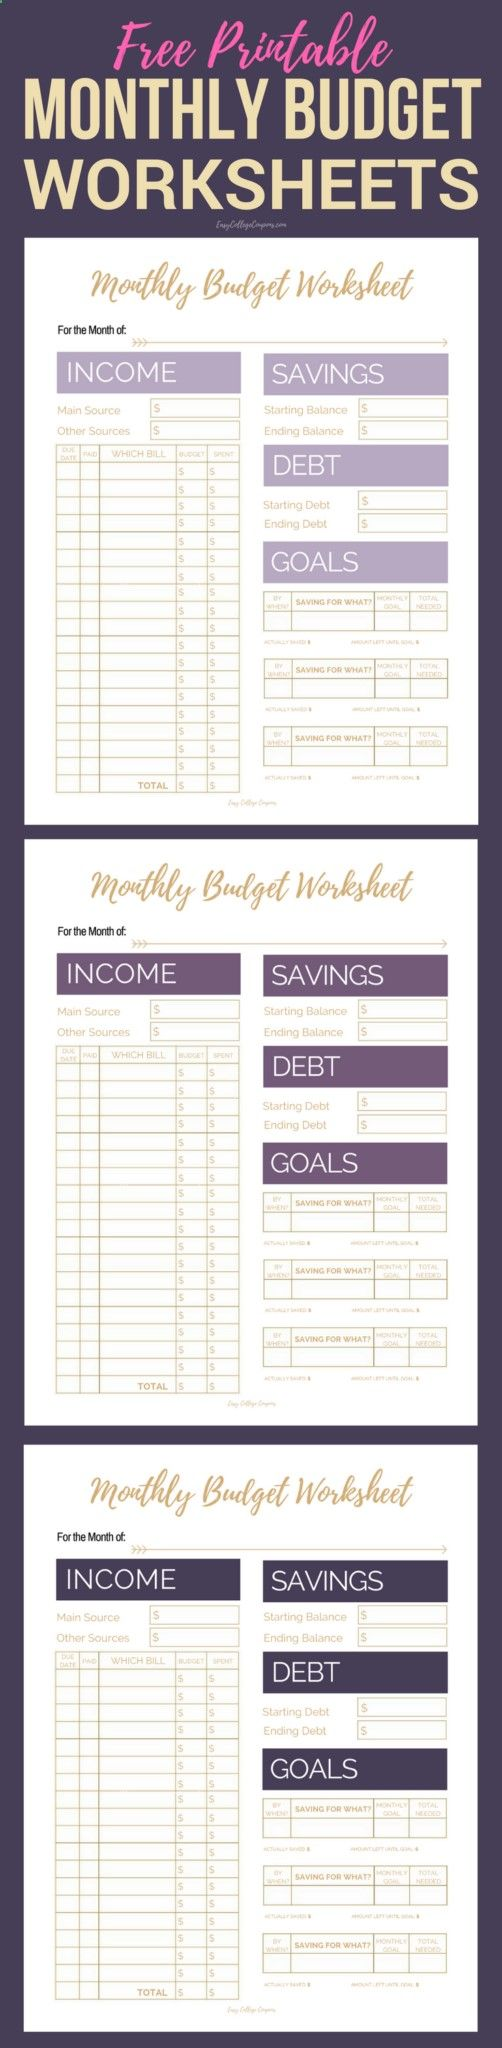 Earn Money From Home Free Printable Budget Worksheet, Sheets, Planner | Simple College Budgeting | Finance, Saving Money #budeting #budgetlife #frugalliving #freeprintables #printables You may have signed up to take paid surveys in the past and didn't make any money because you didn't know the correct way to get started!